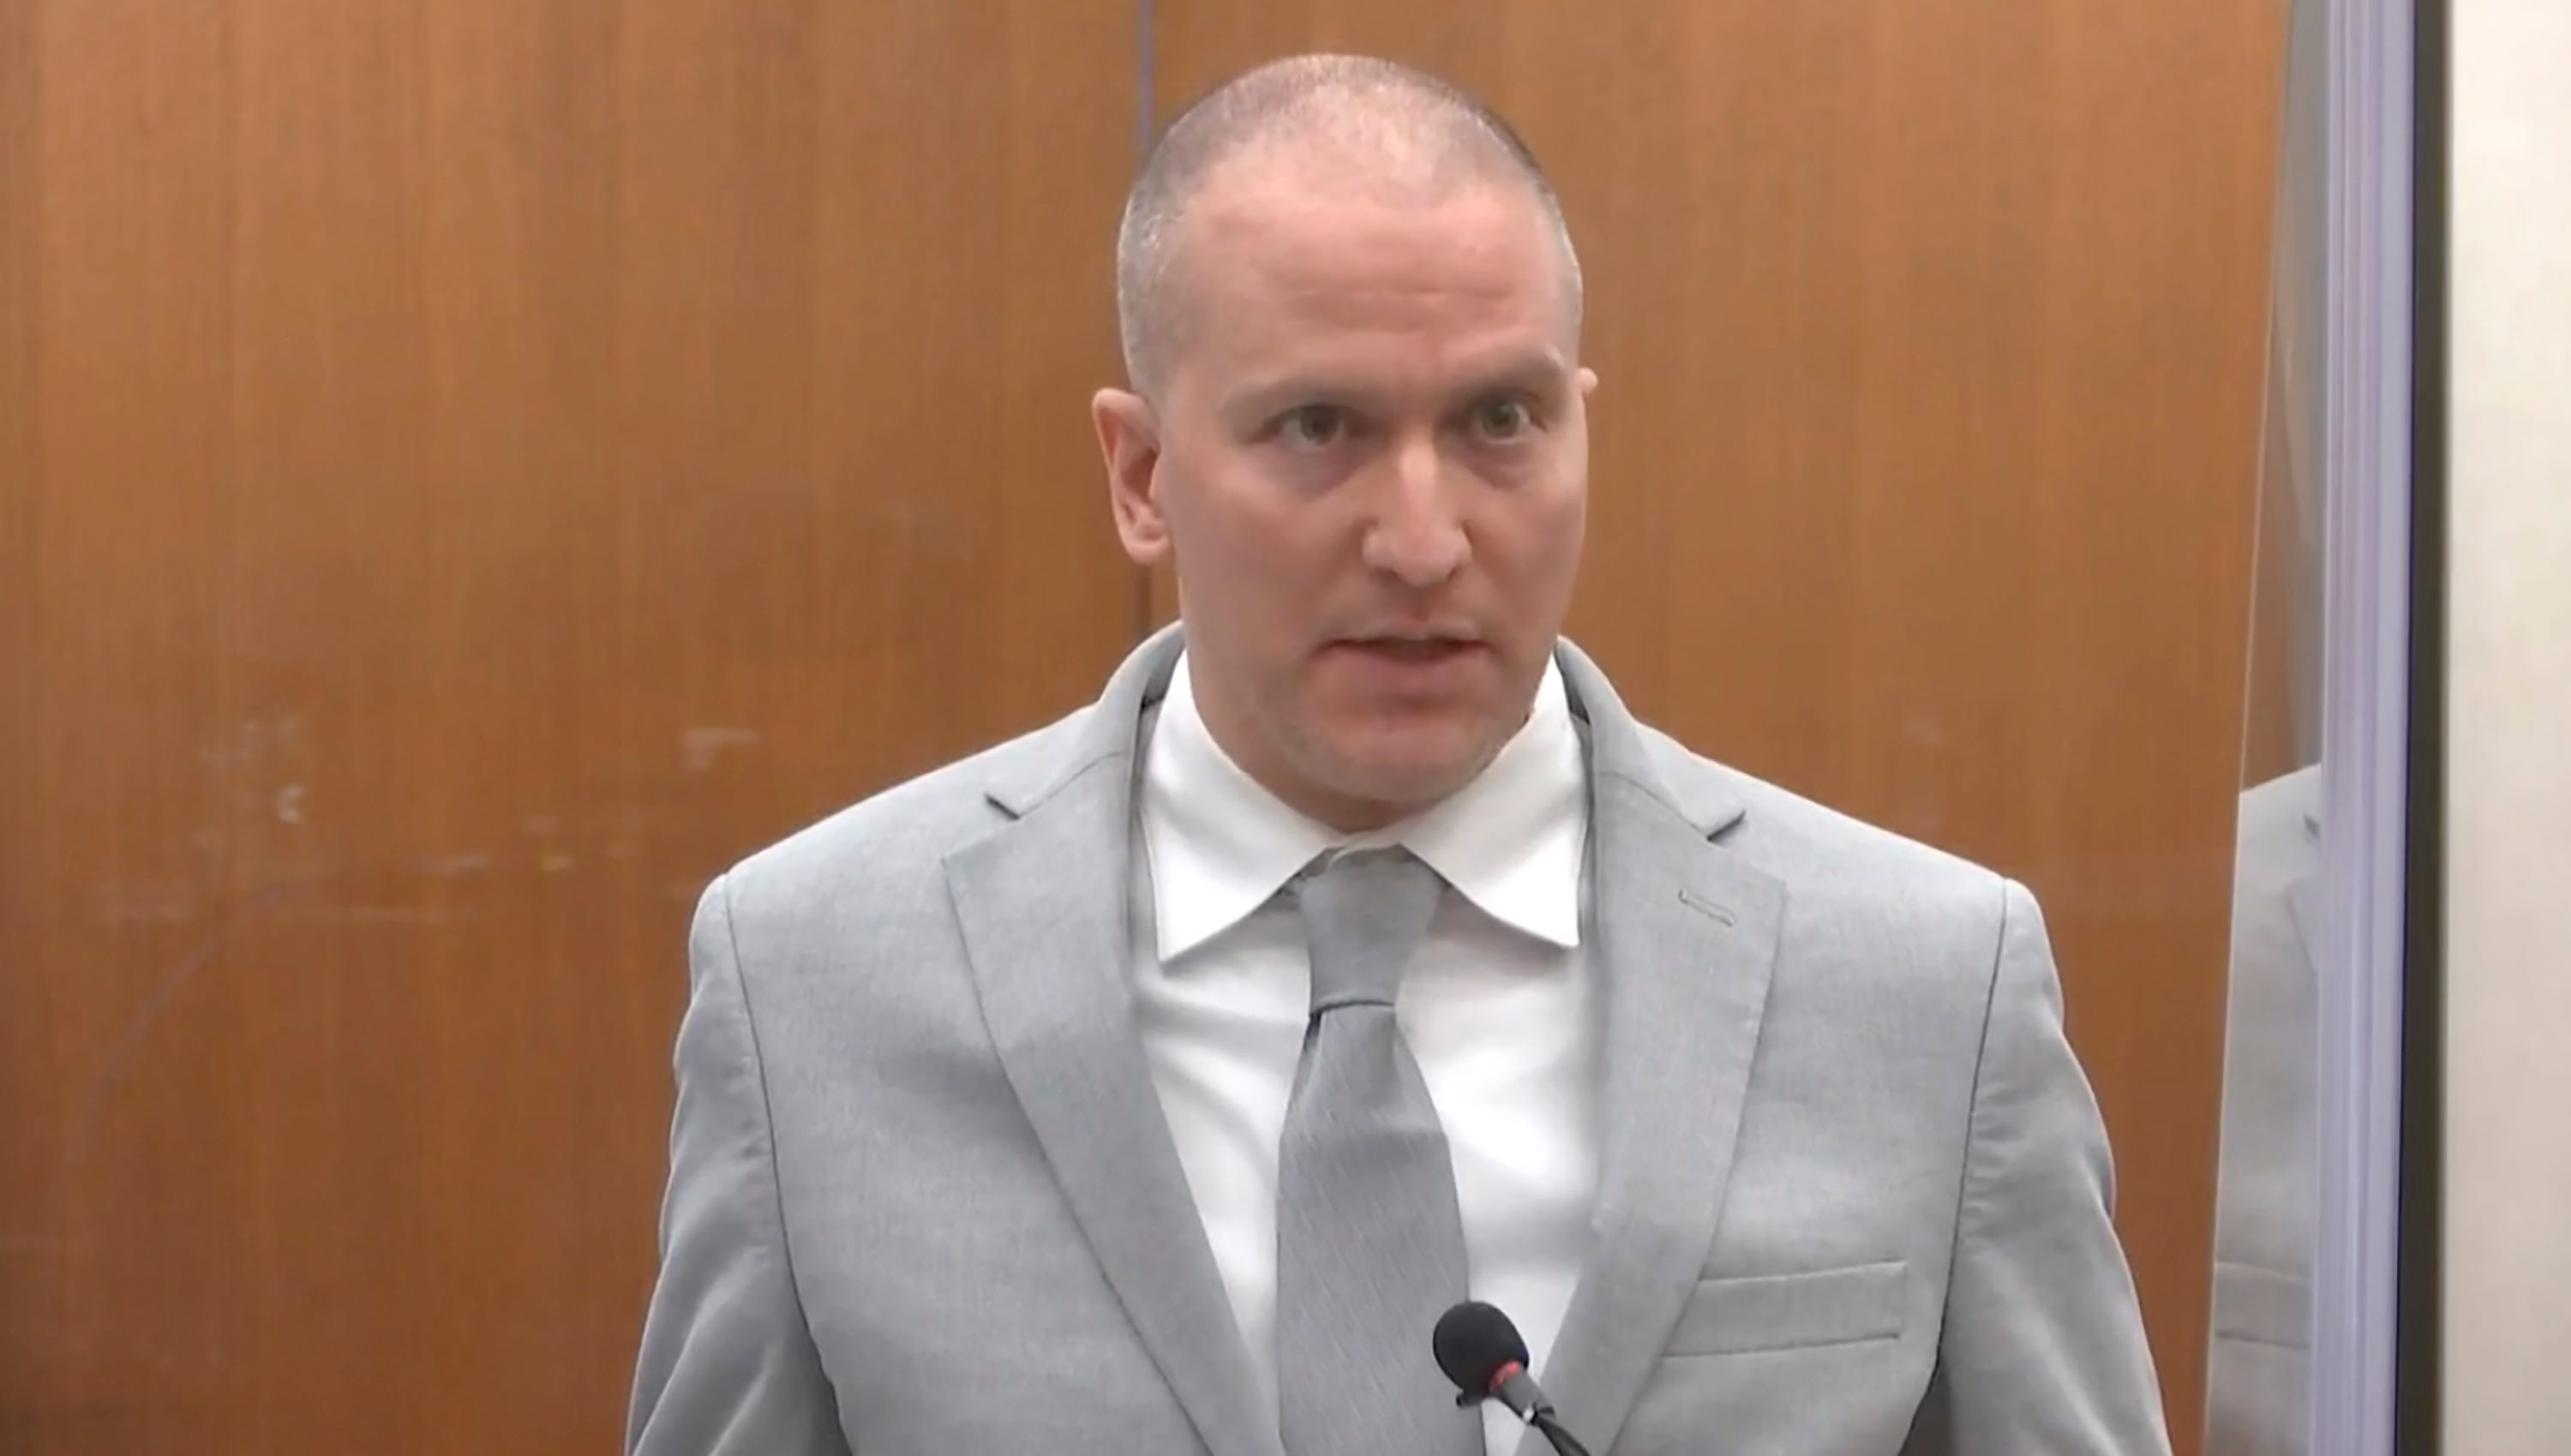 Derek Chauvin sentenced to 22 1/2 years in prison for the murder of George Floyd